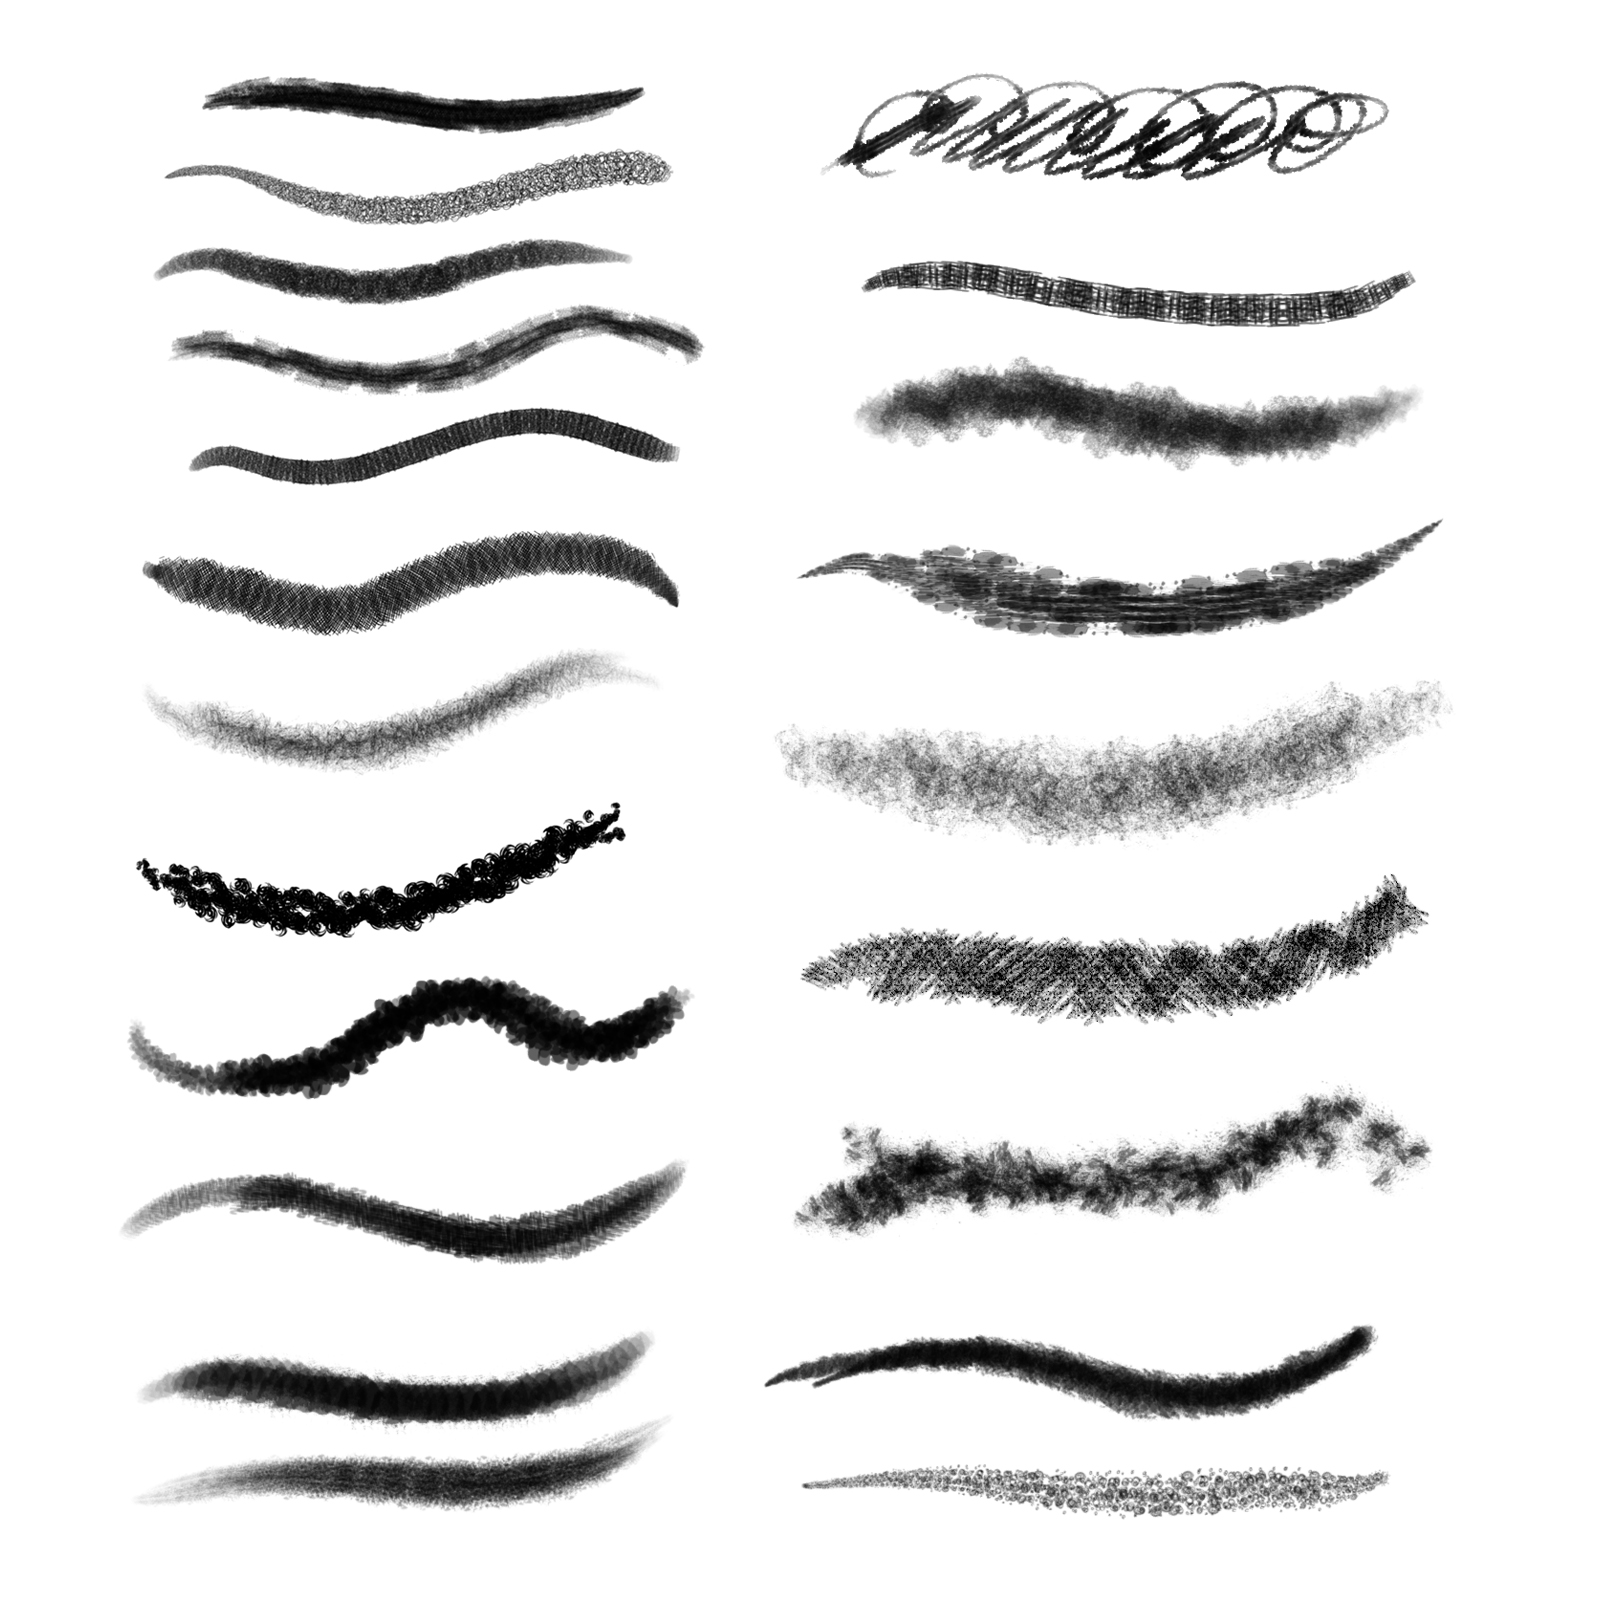 Another_natural_media_brushes